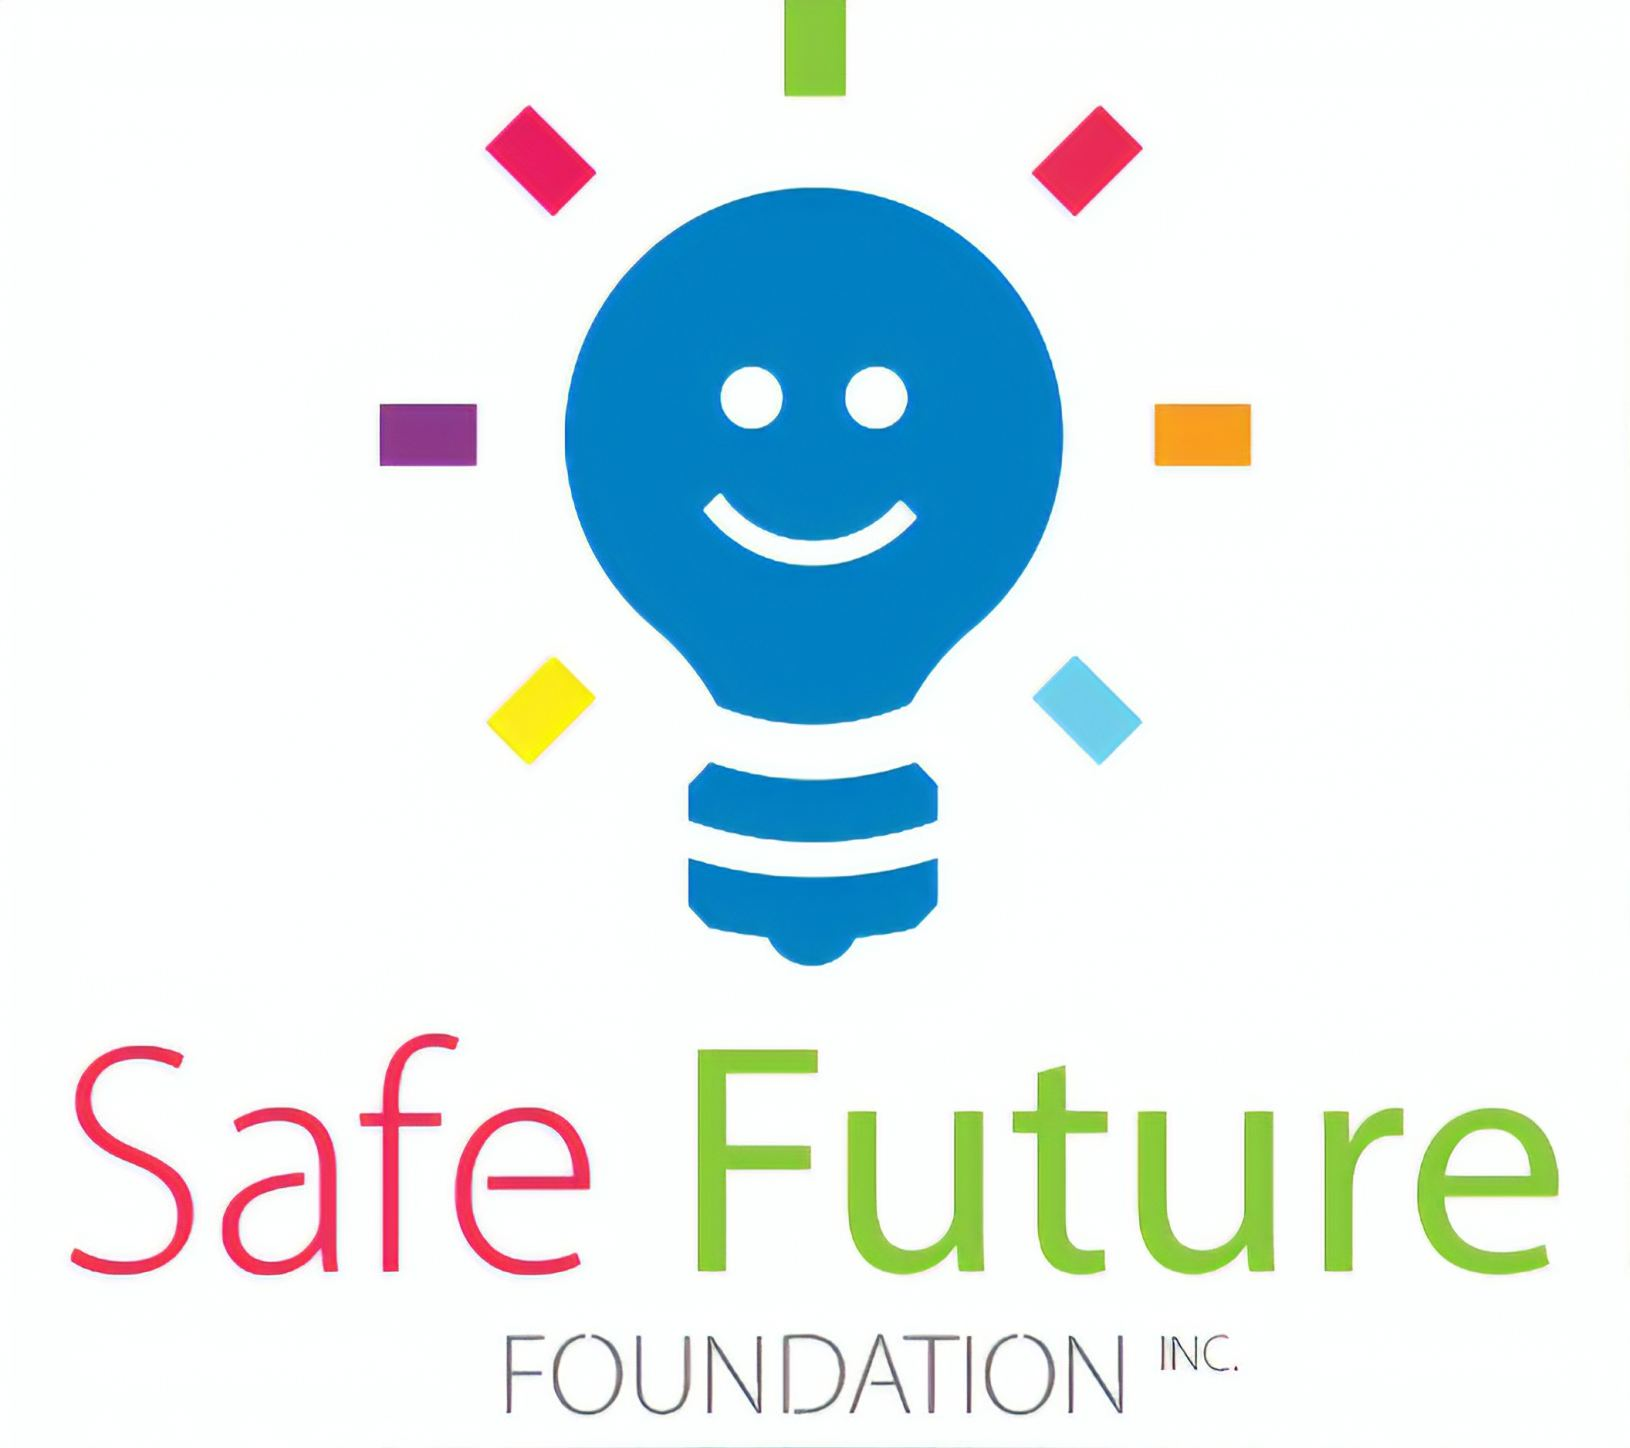 safefuture Logo